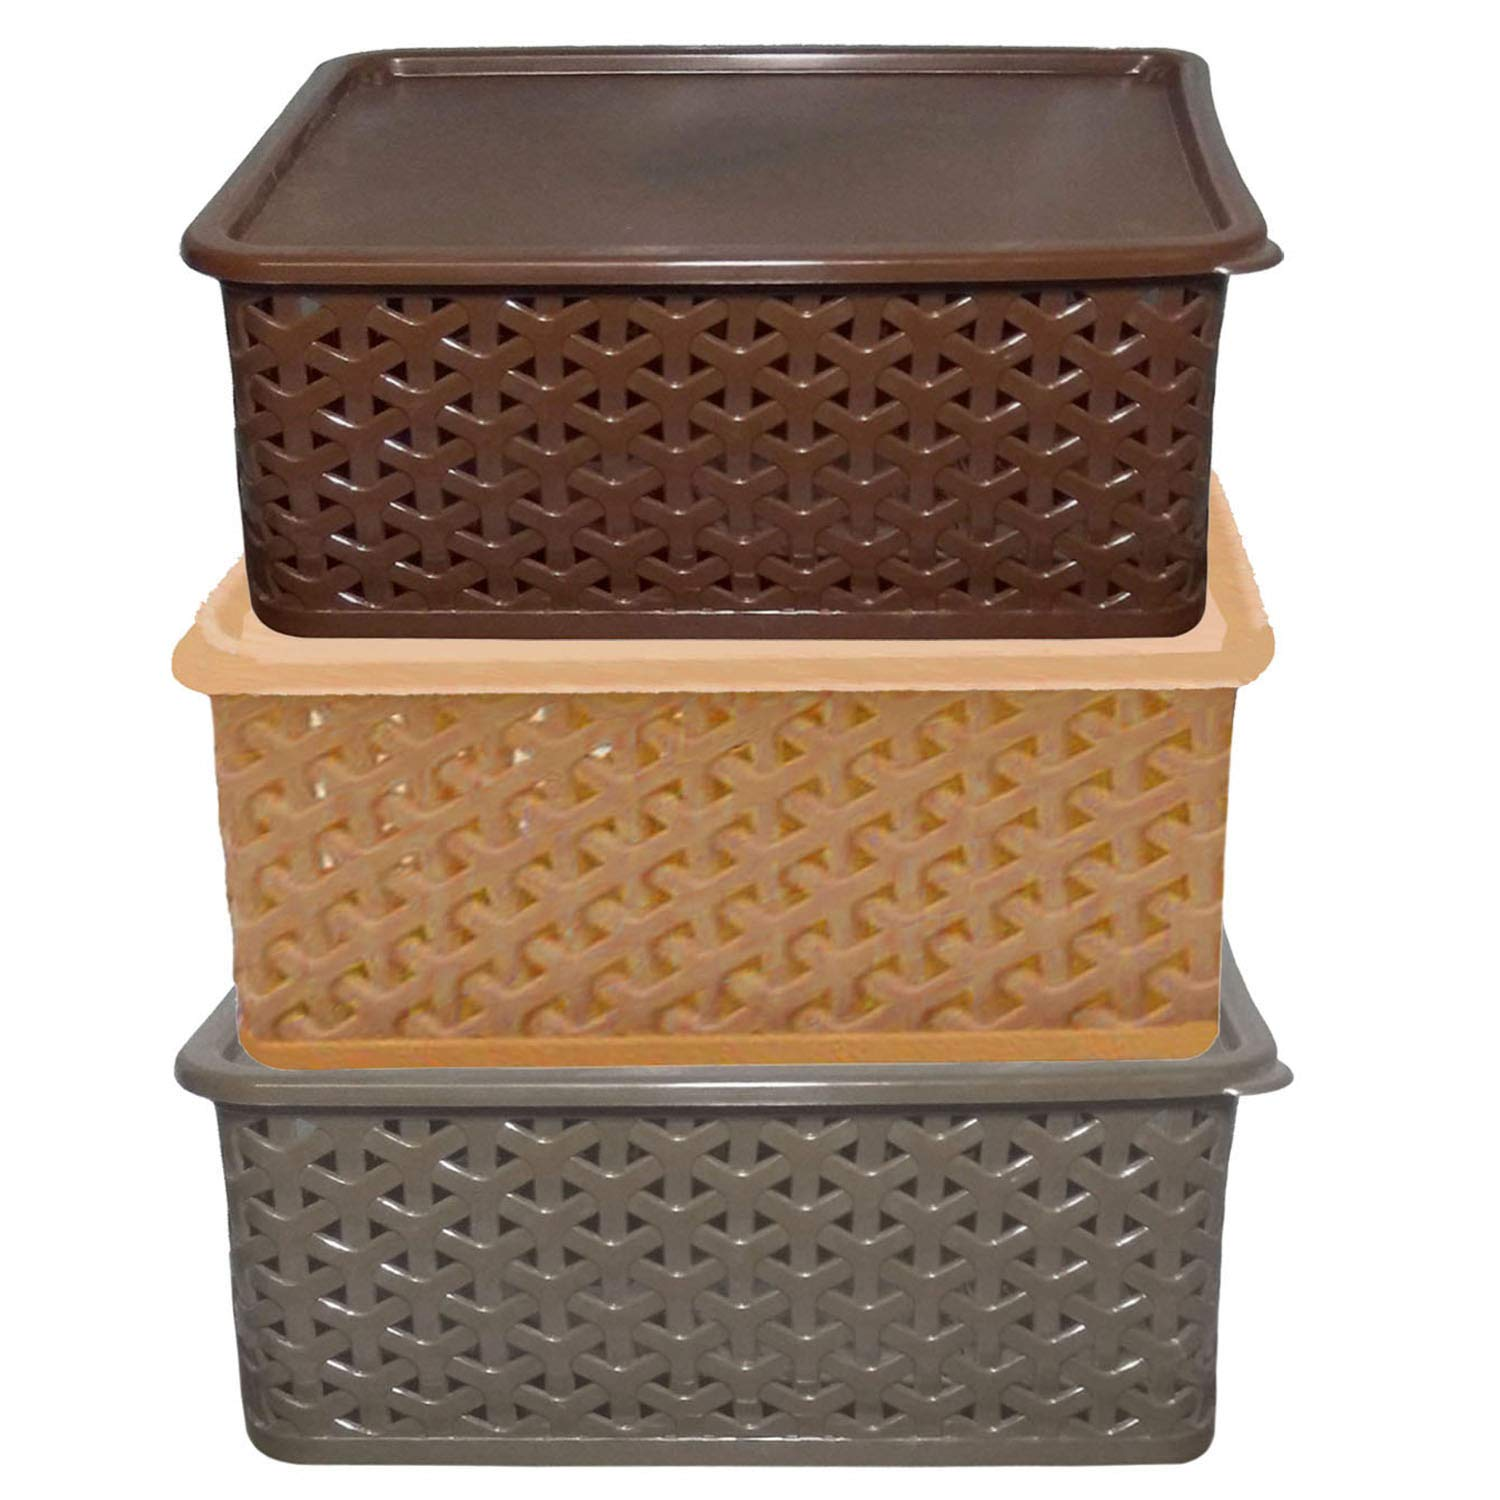 Kuber Industries Plastic 3 Pieces Big Size Multipurpose Solitaire Storage Basket with Lid (Multi) -CTLTC10908 (B07TWFVF2H) Amazon Price History, Amazon Price Tracker